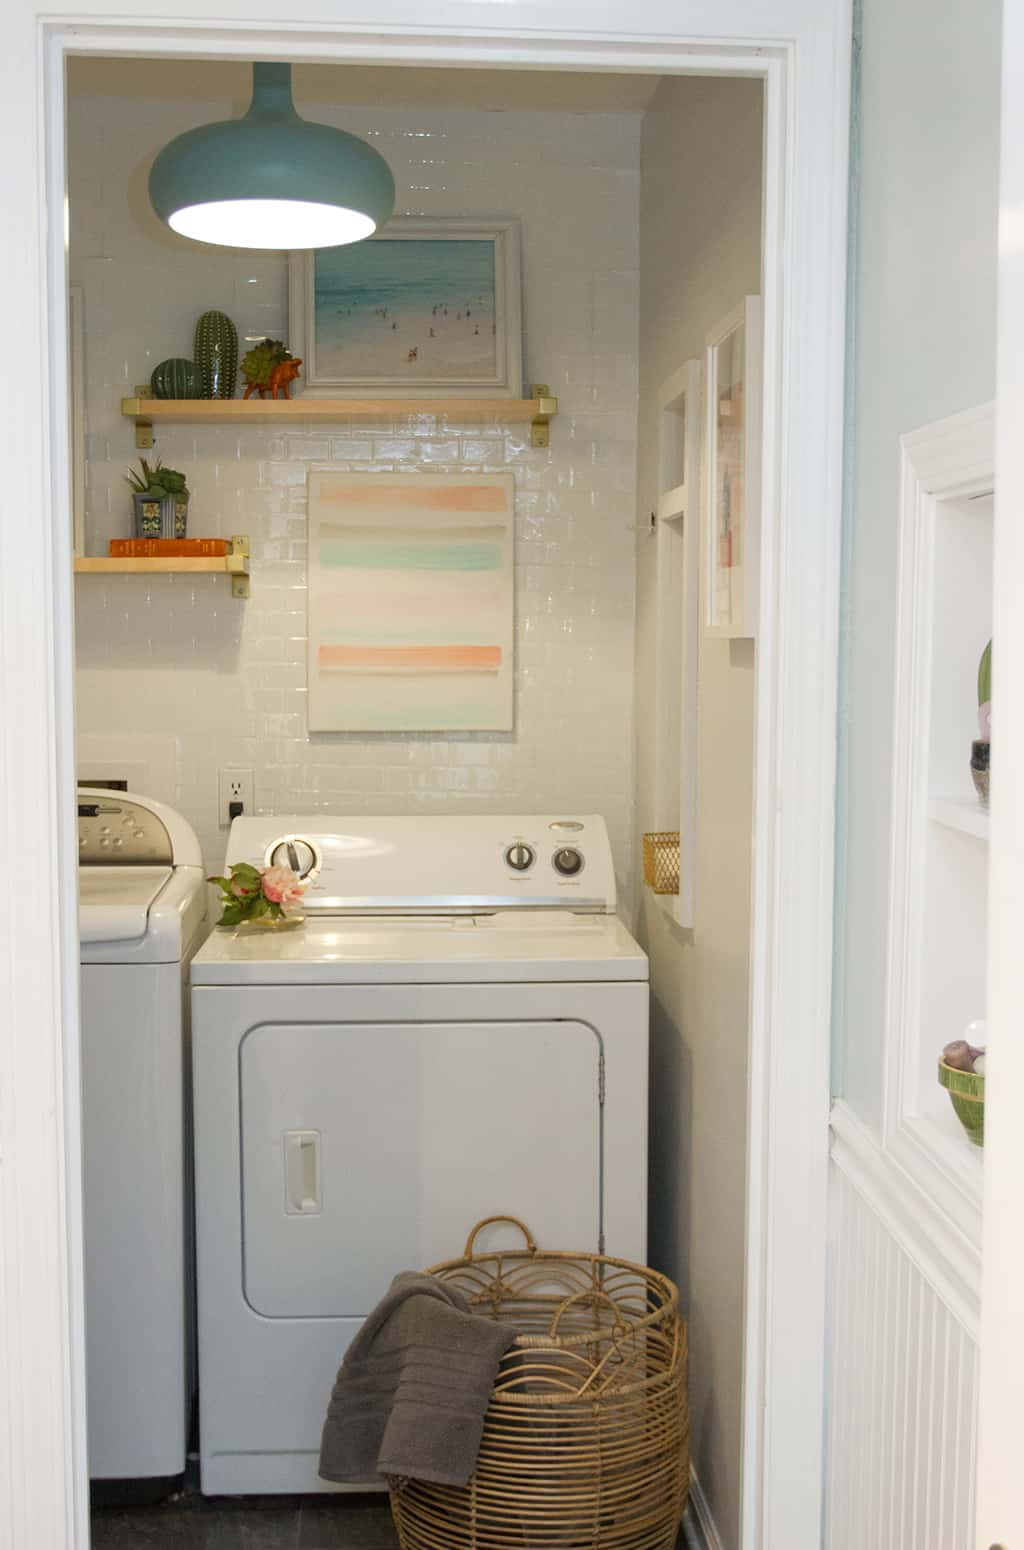 Audrey of Oh So Lovely Blog shares a super quick and affordable DIY laundry room update.